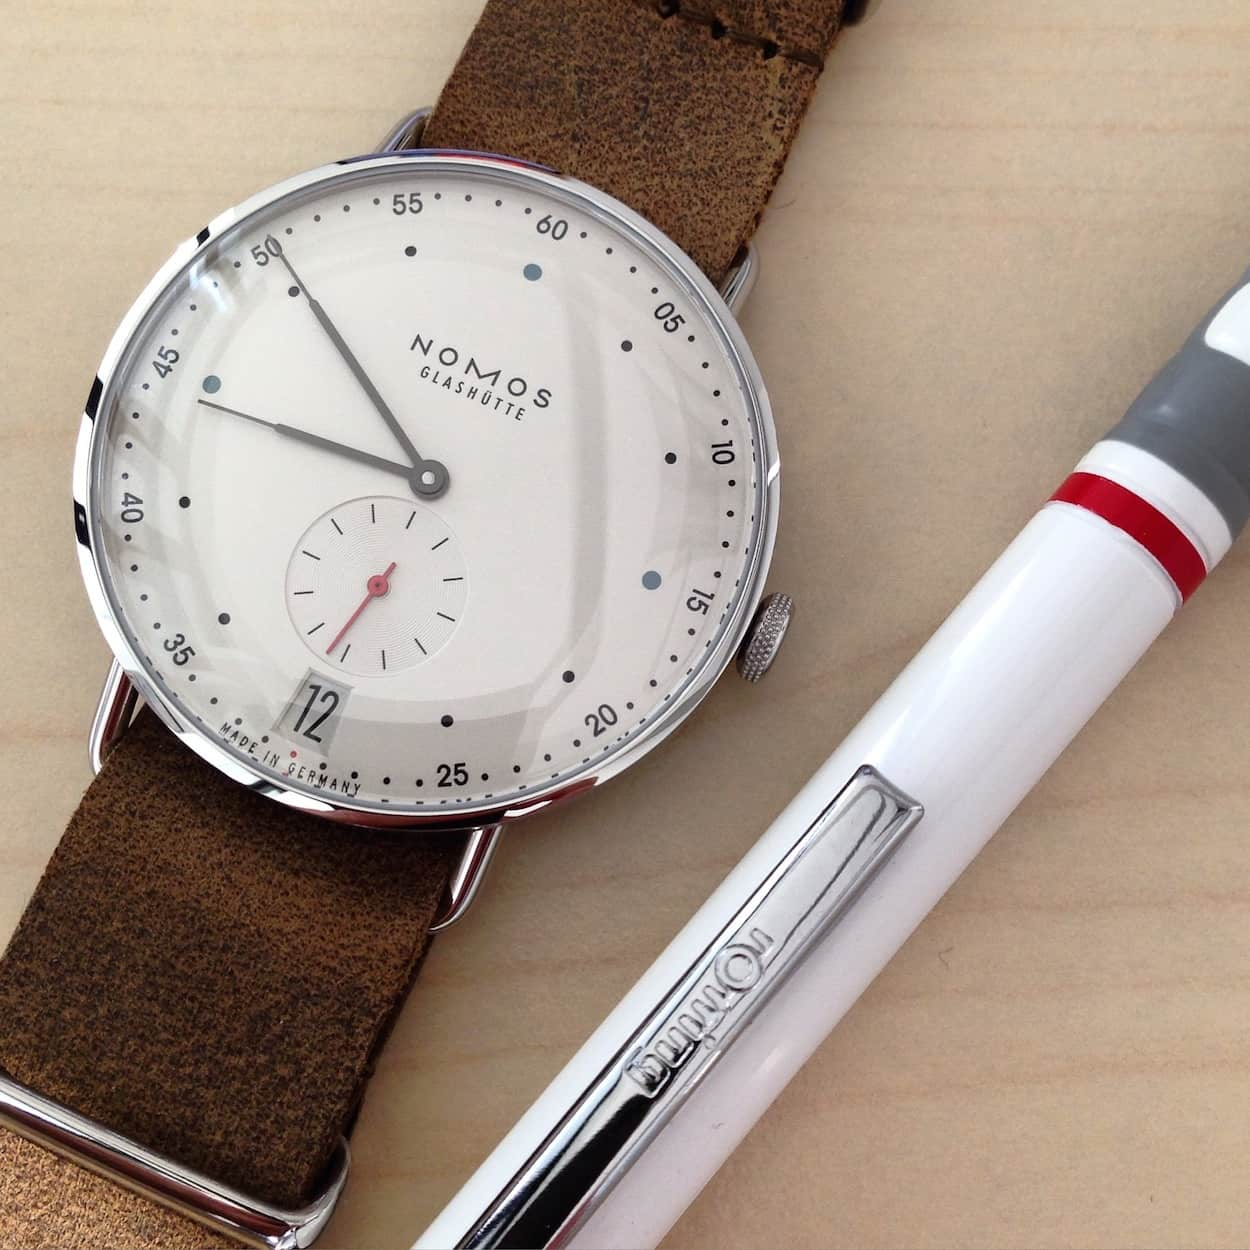 Hands-on: Nomos Metro 38 Datum